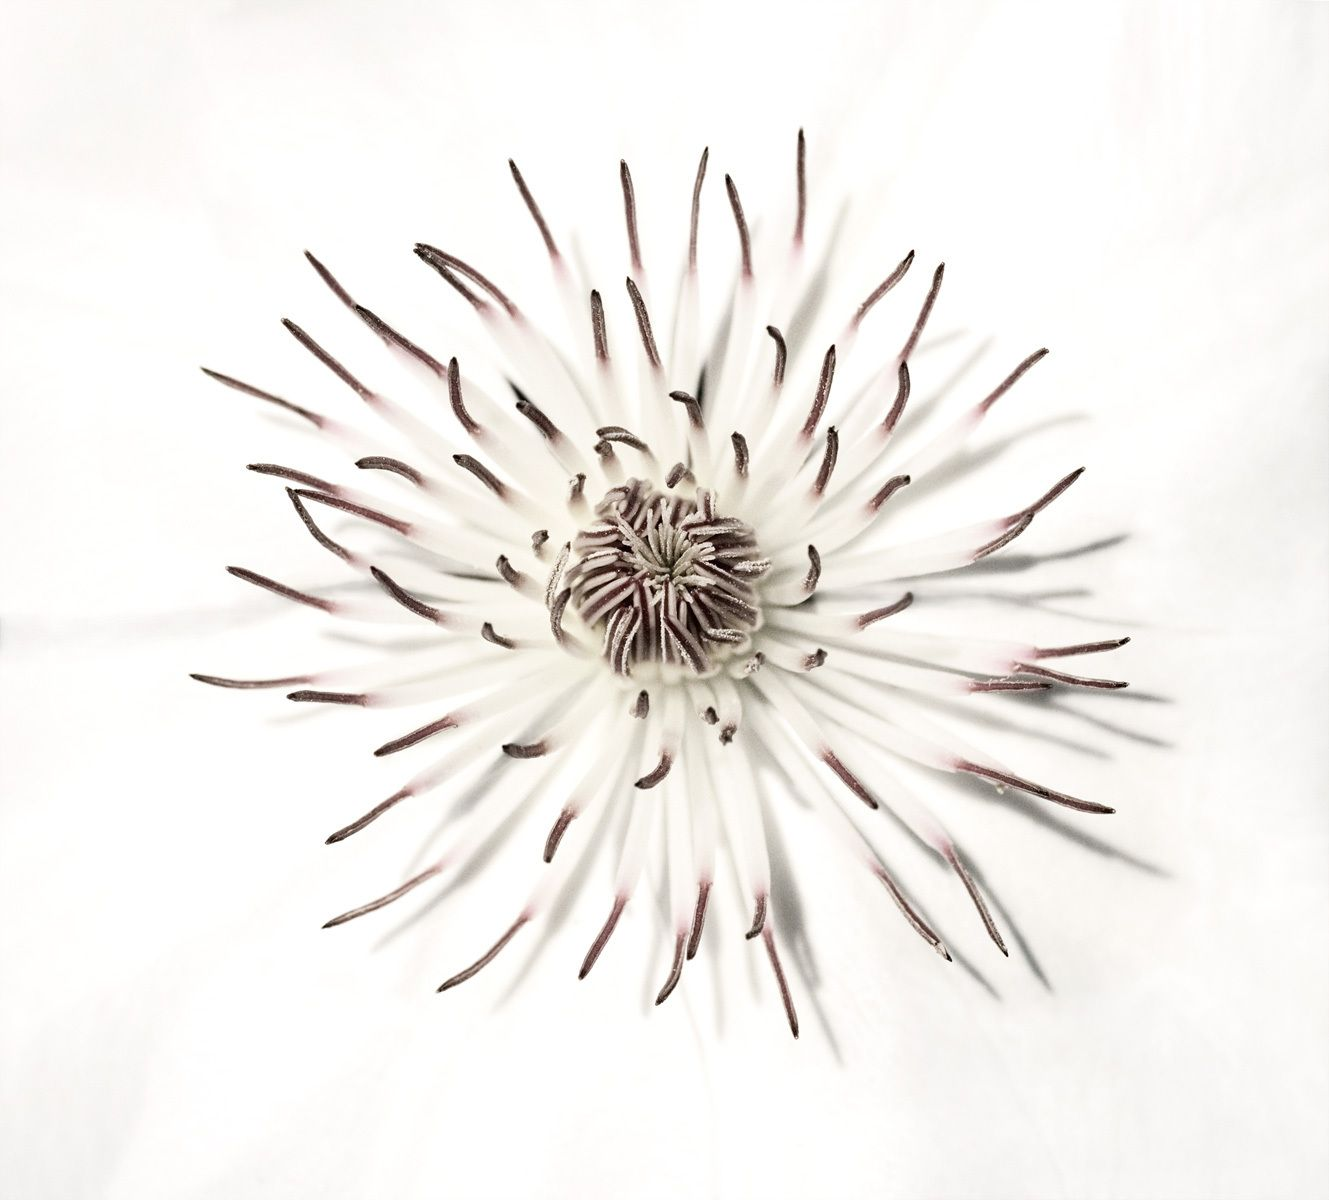 White clematis center photograph